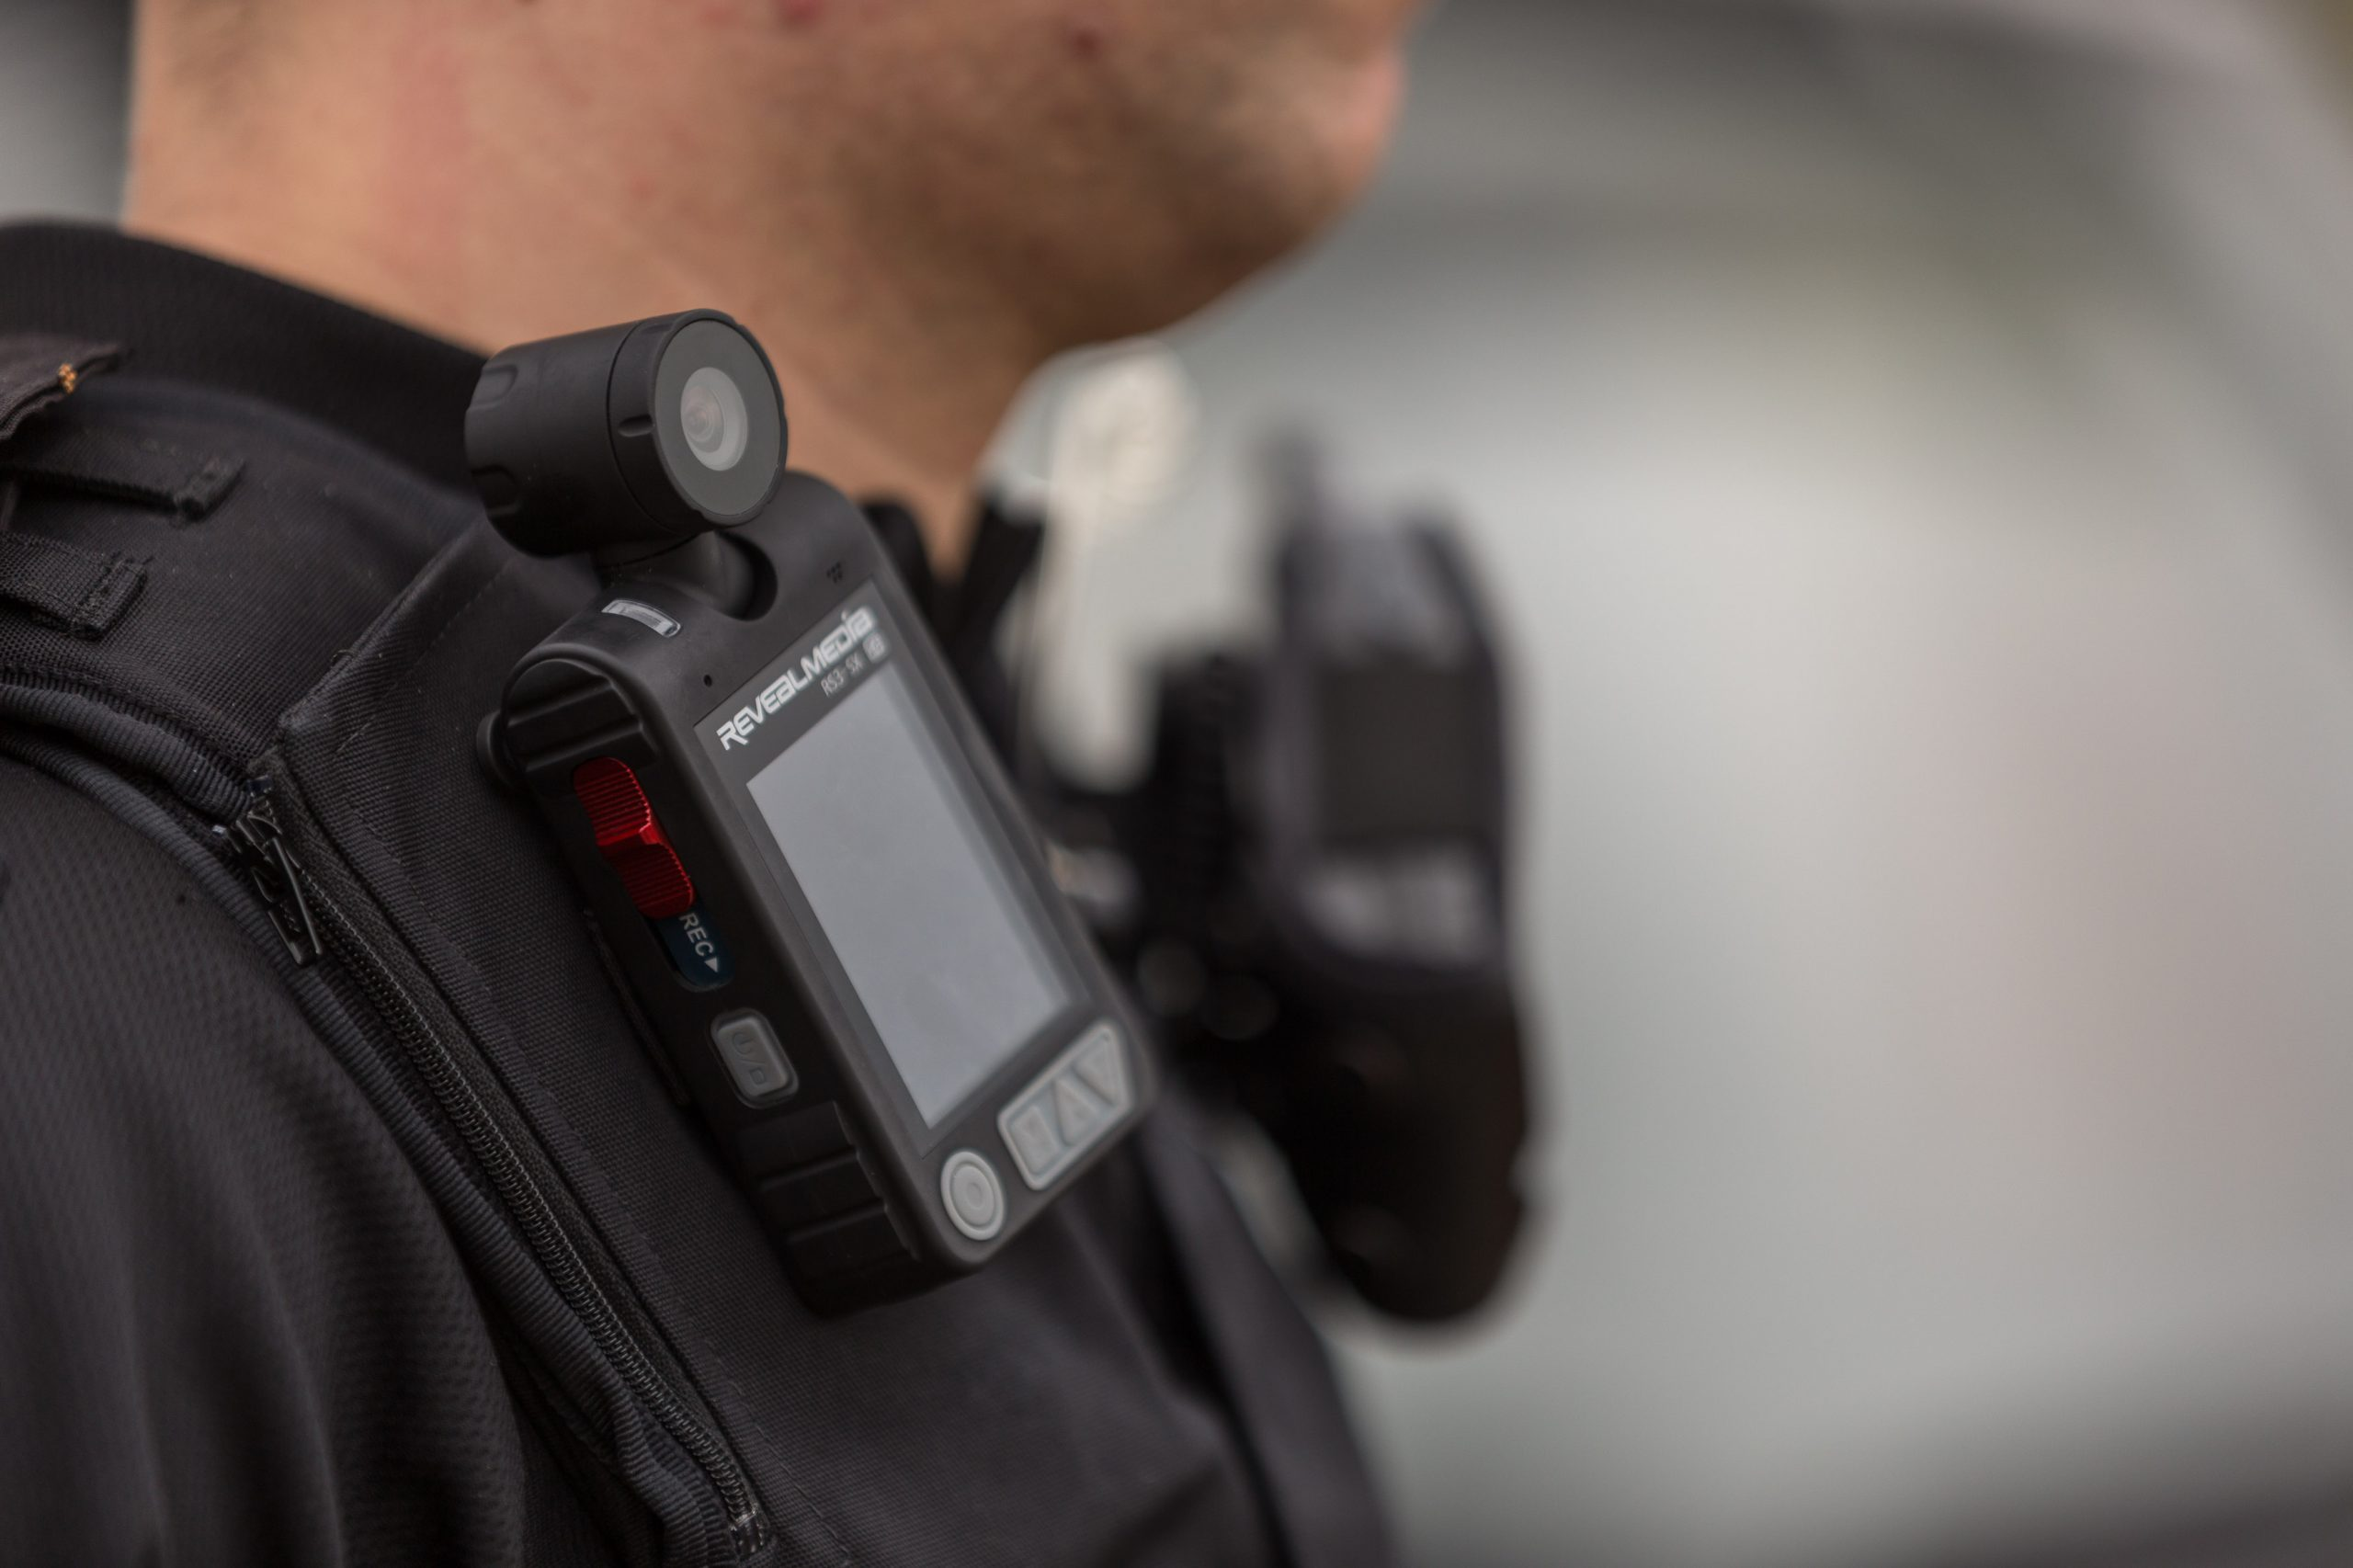 Thames Valley Police trial body worn cameras